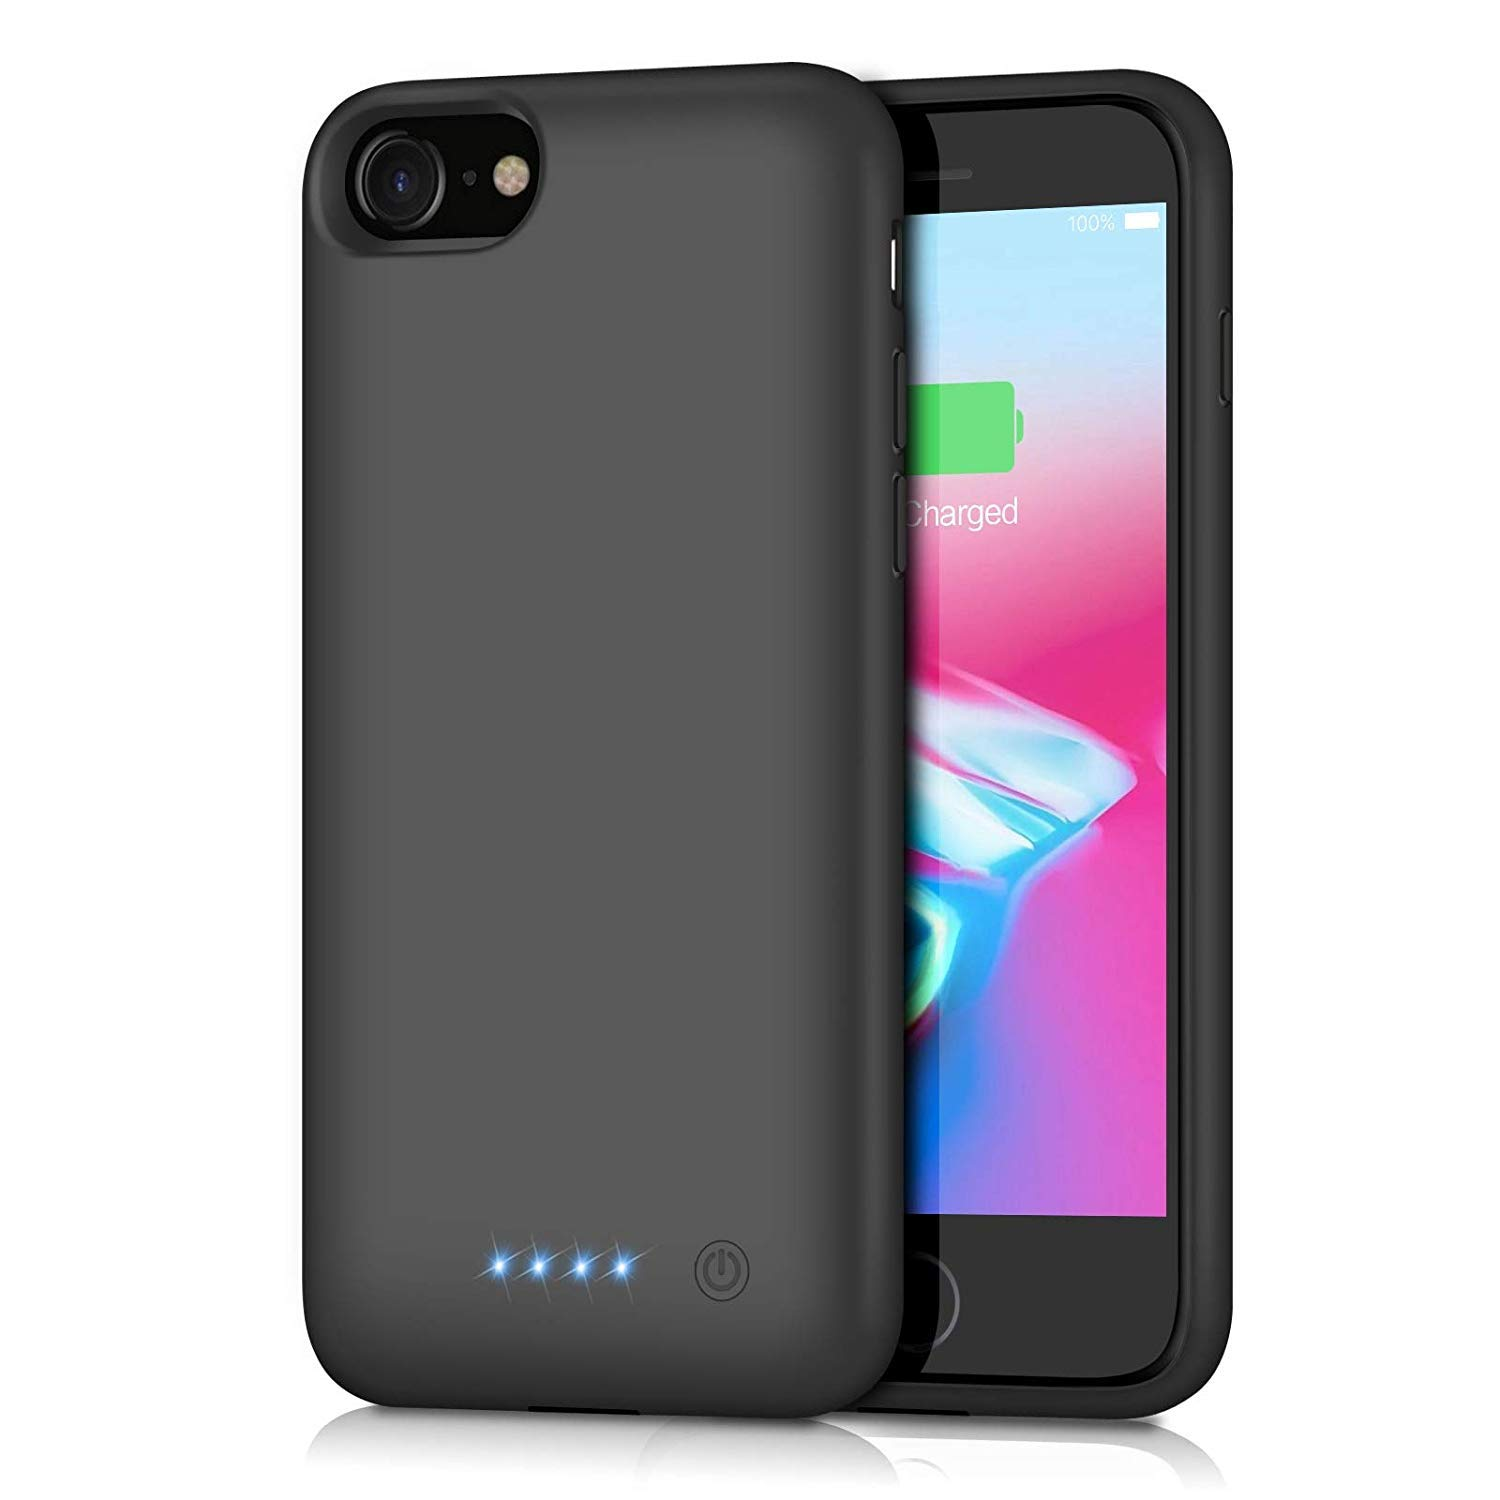 QTshine Battery Case for iPhone 8/7, [6000mAh] Protective Portable Charging Case Rechargeable Extended Battery Pack for Apple iPhone 8&7(4.7') Backup Power Bank Cover - Black